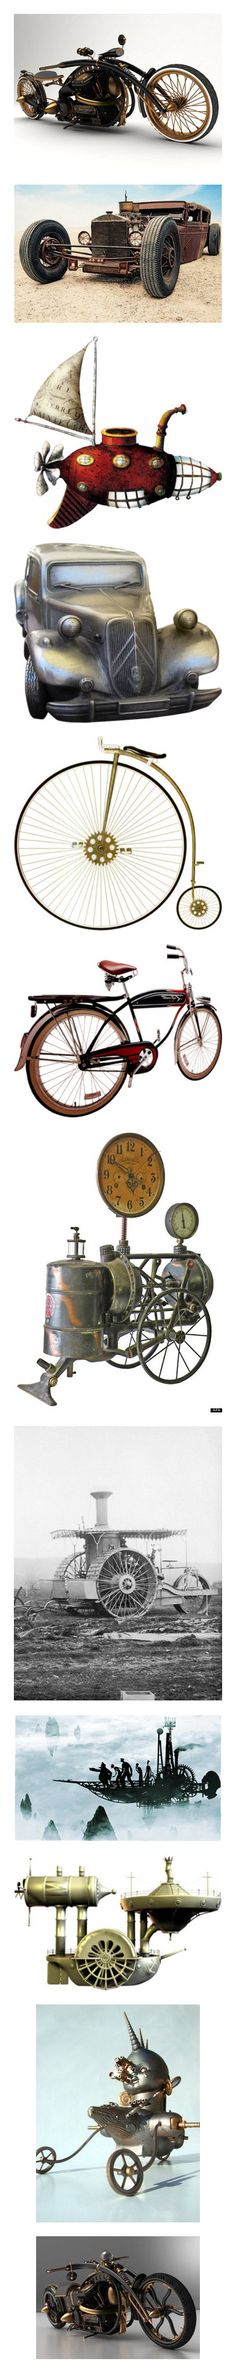 """""""Steampunk Vehicles"""" by synkopika ❤ liked on Polyvore featuring steampunk, motorcycles, vehicles, backgrounds, cars, transportation, vintage, bikes, transport and home"""